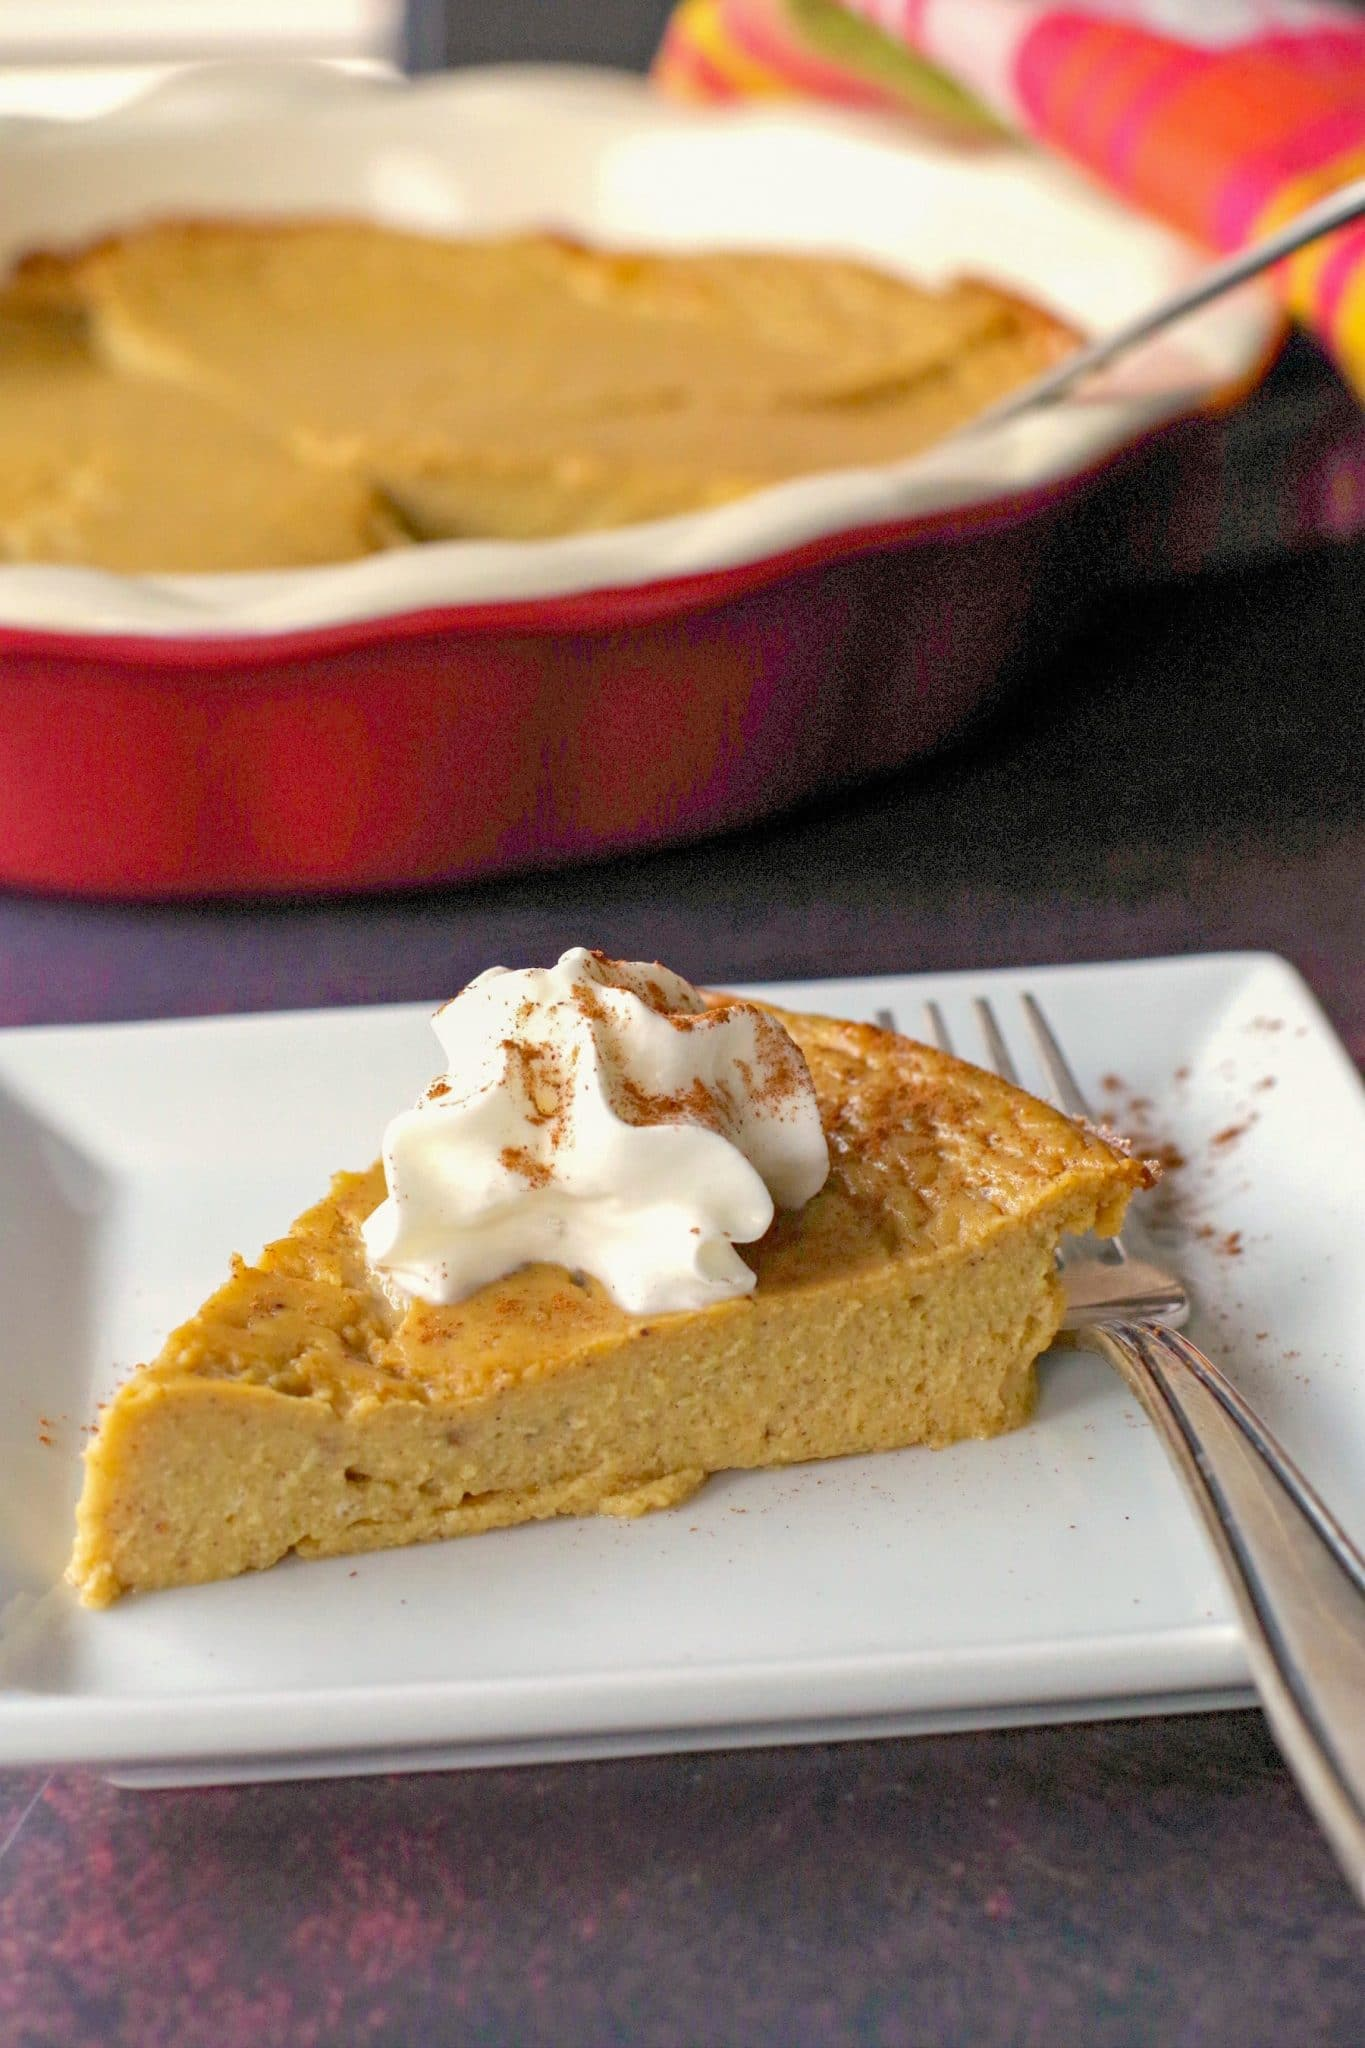 WW no crust pumpkin pie on a white plate with fork and whole pie in background